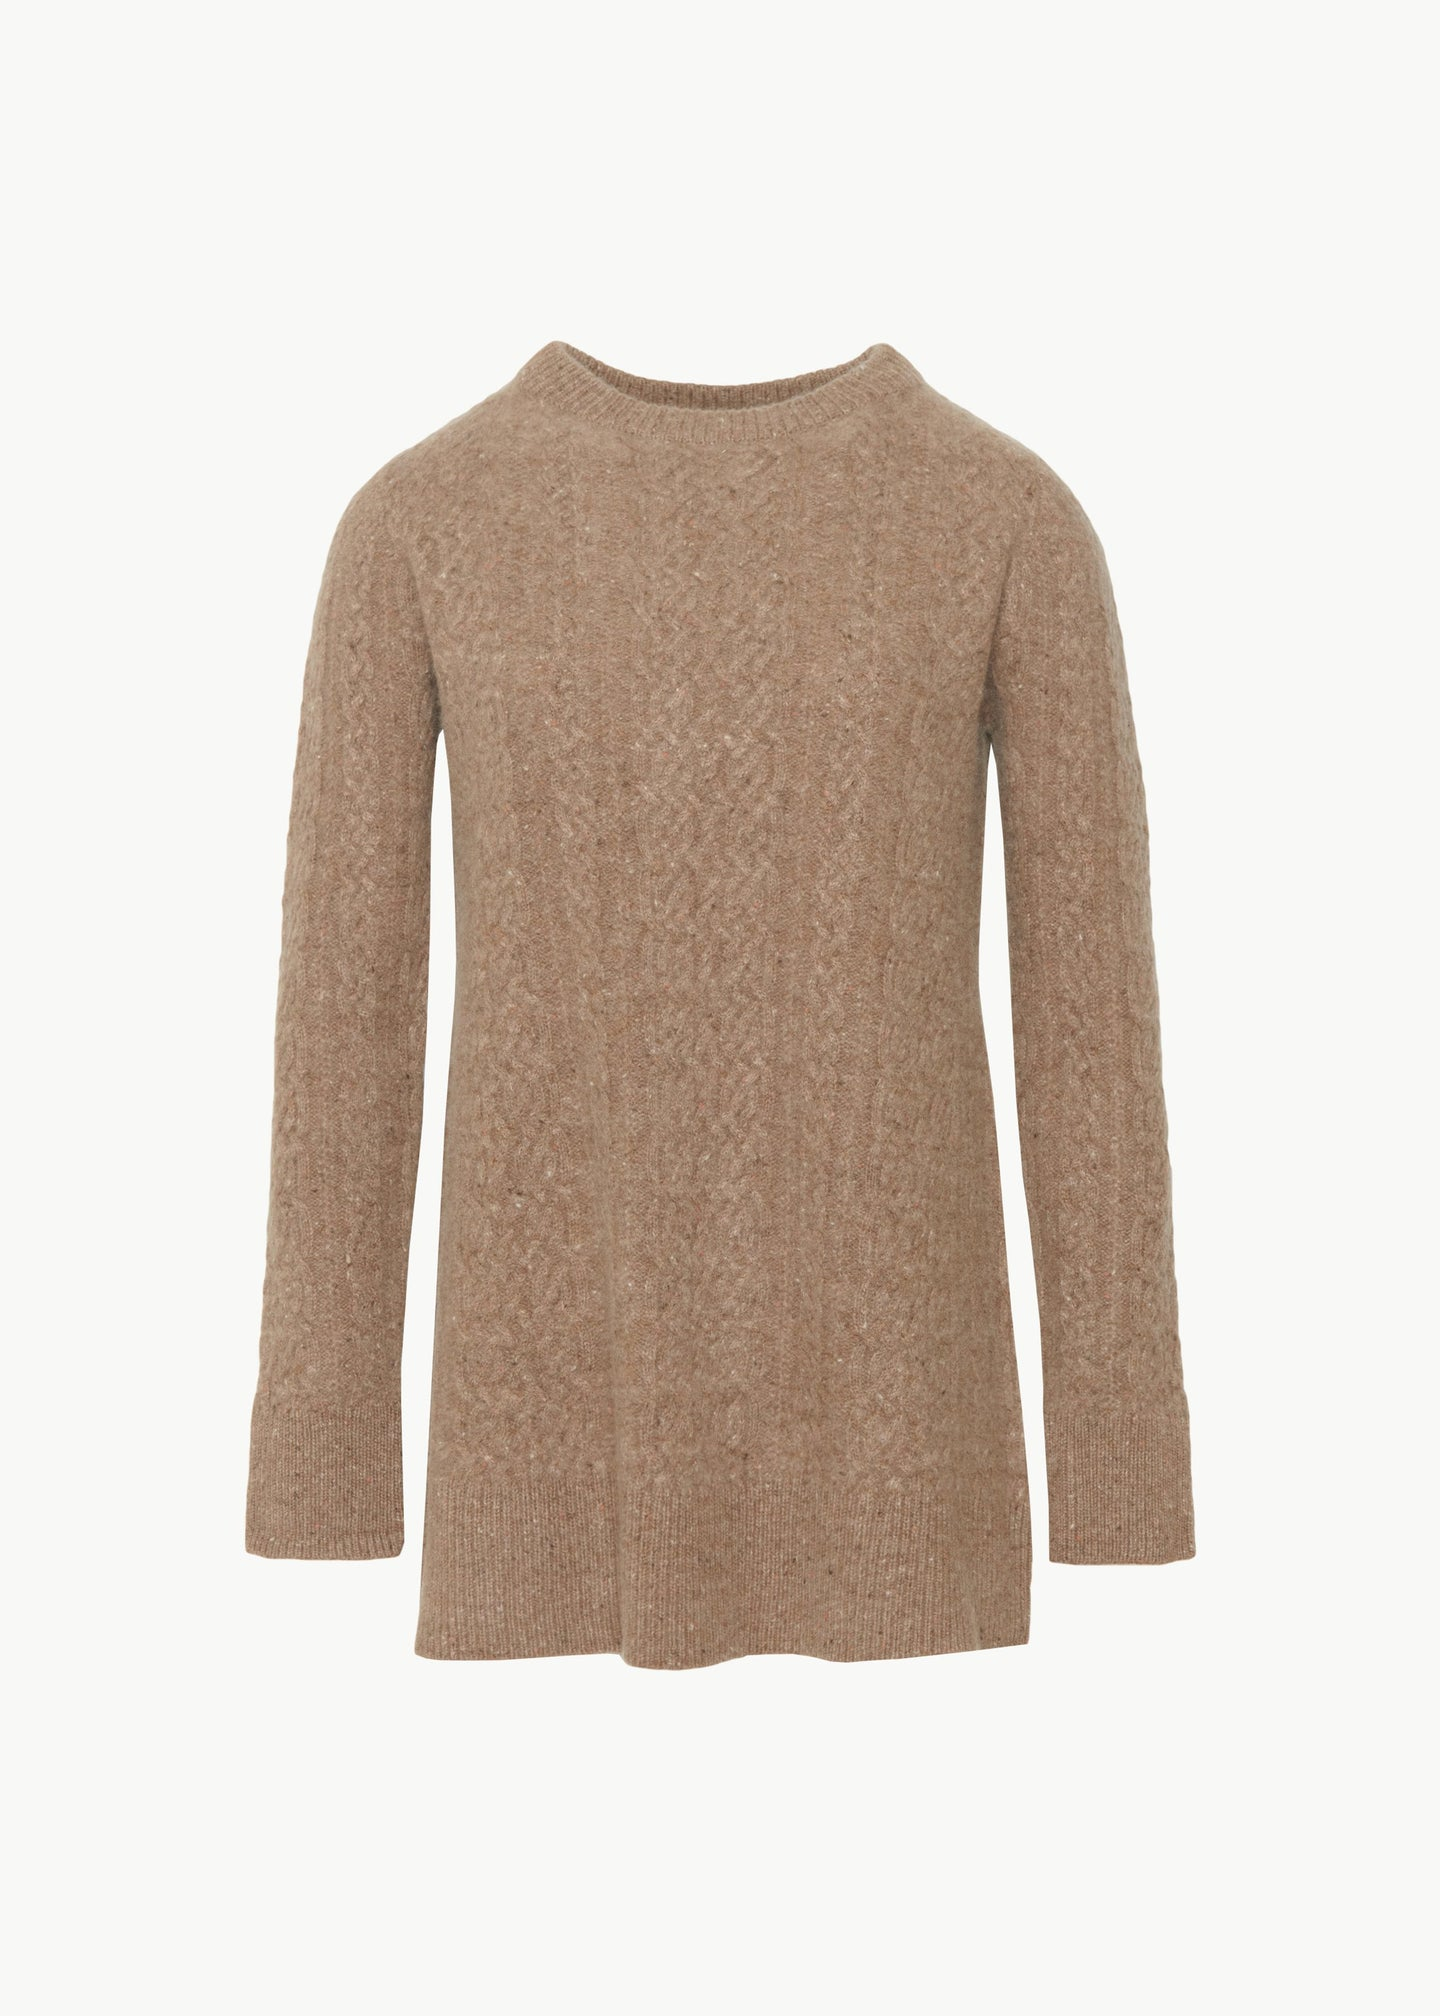 Cable Knit Sweater in Cashmere - Speckled Pecan - CO